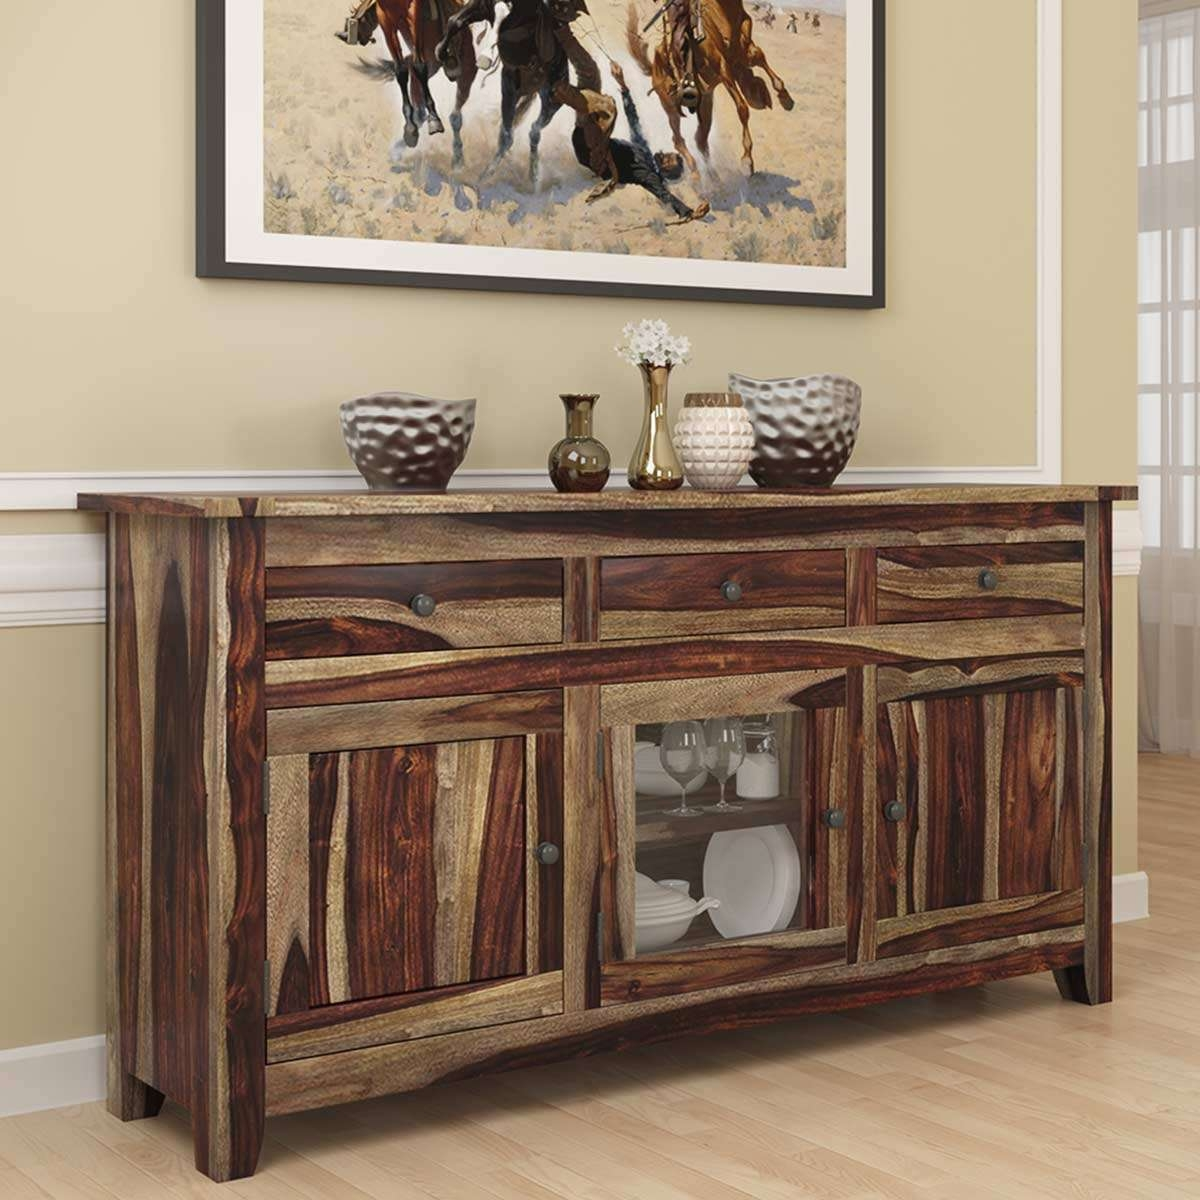 Rustic Buffets Sideboards Intended For Rustic Buffet Sideboards (View 6 of 20)